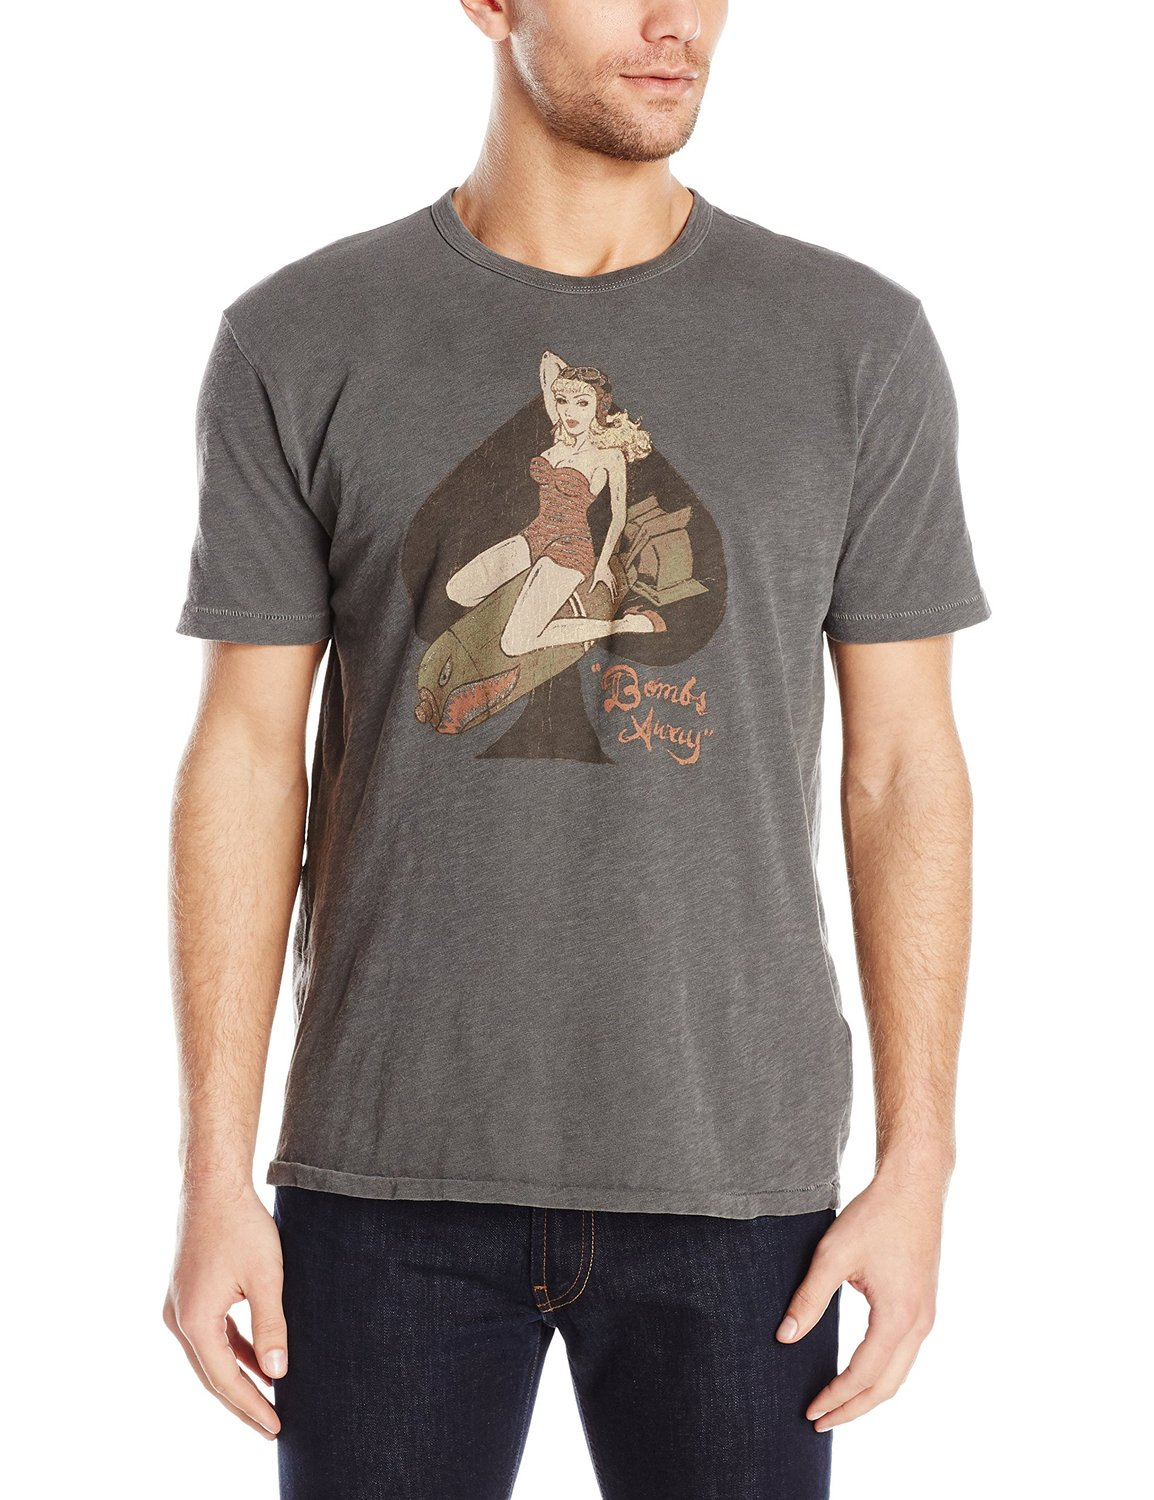 2261d19468 Lucky Brand Graphic T-Shirts - Mens Urban Clothing